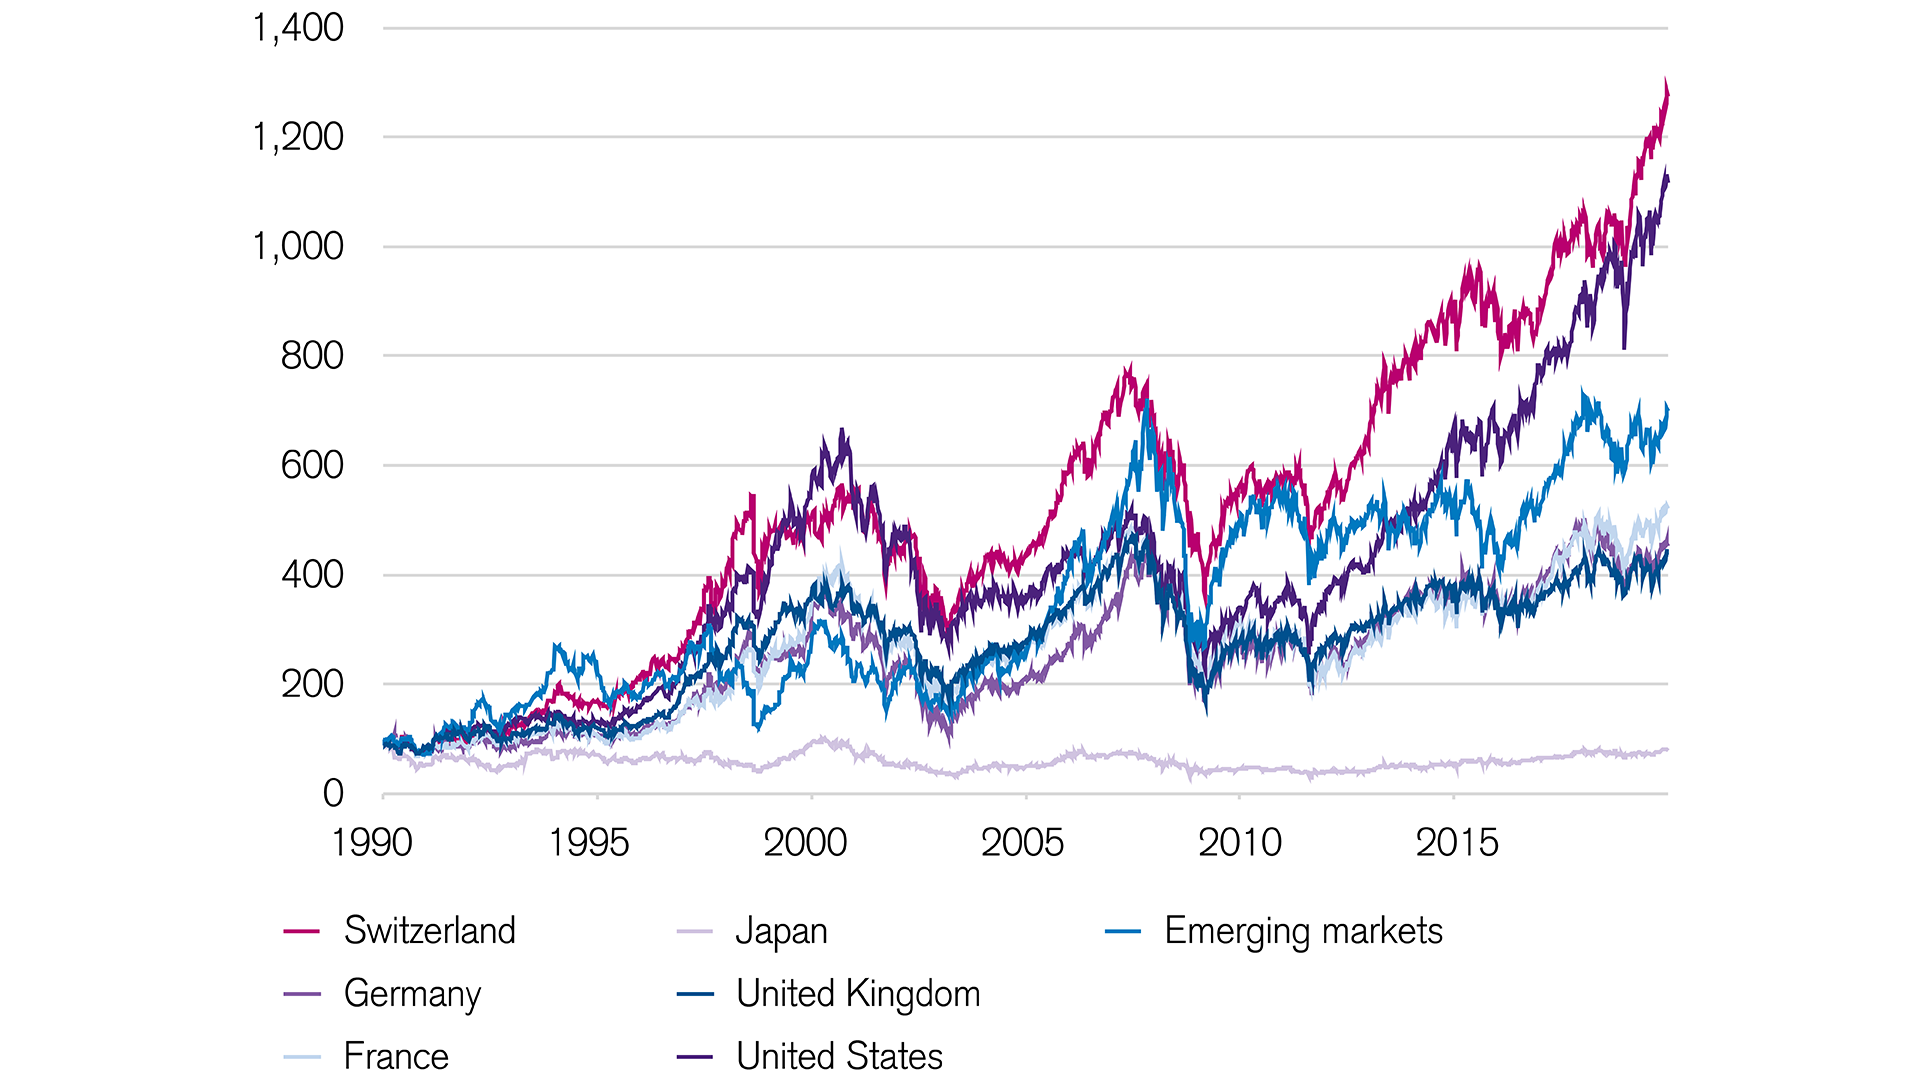 For Swiss investors, Swiss equities are the most attractive